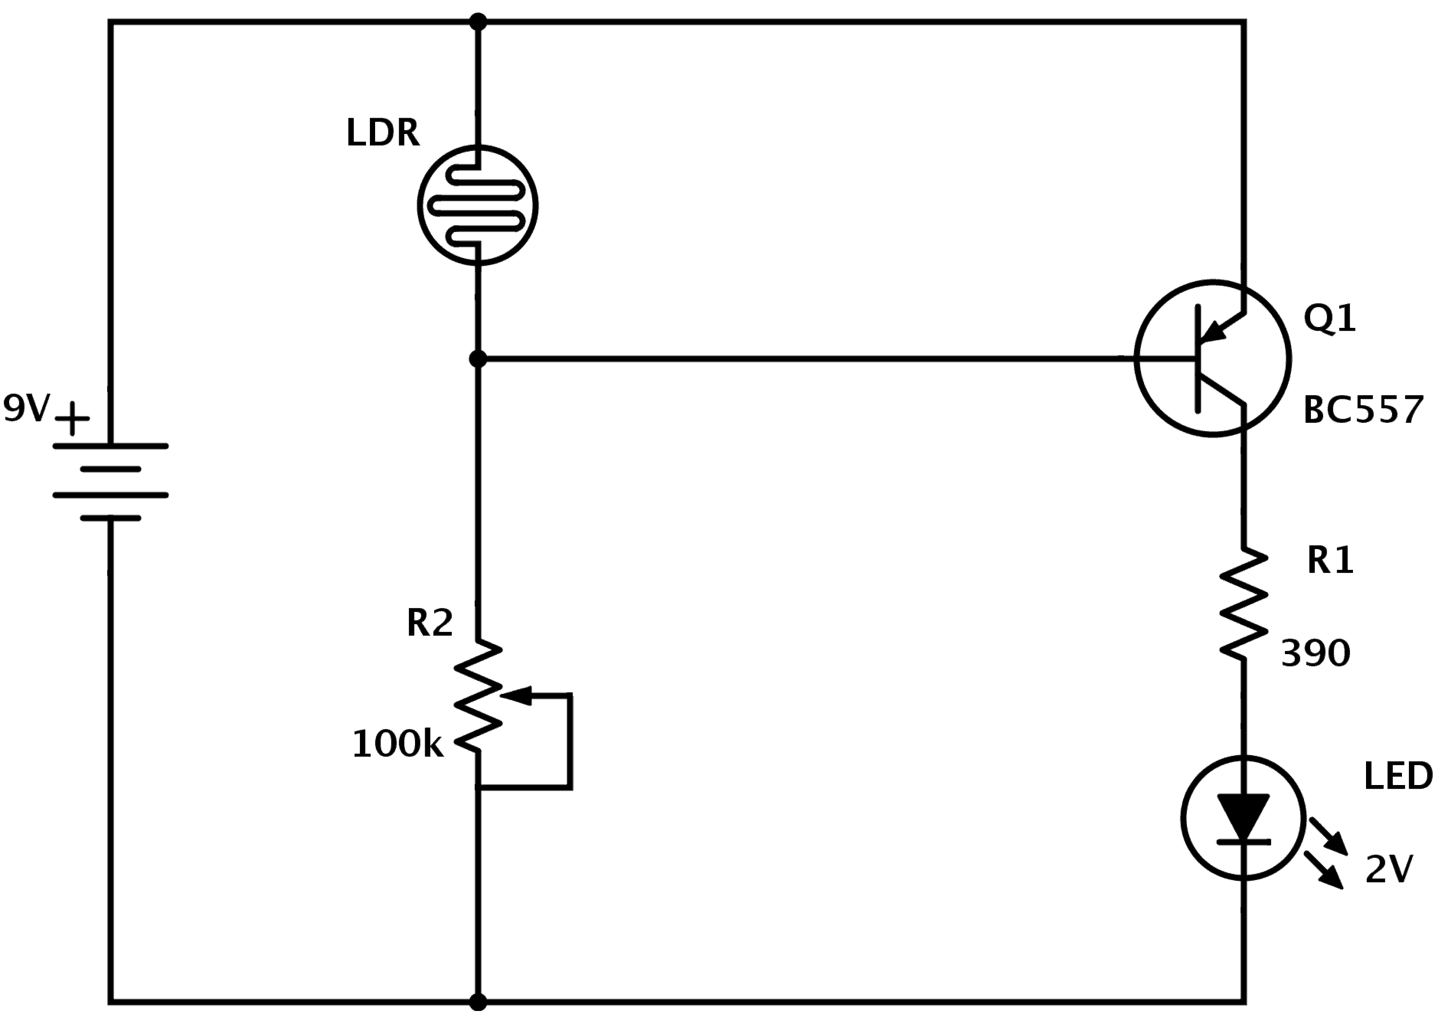 Ldr Circuit Diagram Build Electronic Circuits Car 12v Led Wiring With Pnp Transistor Dark Detector